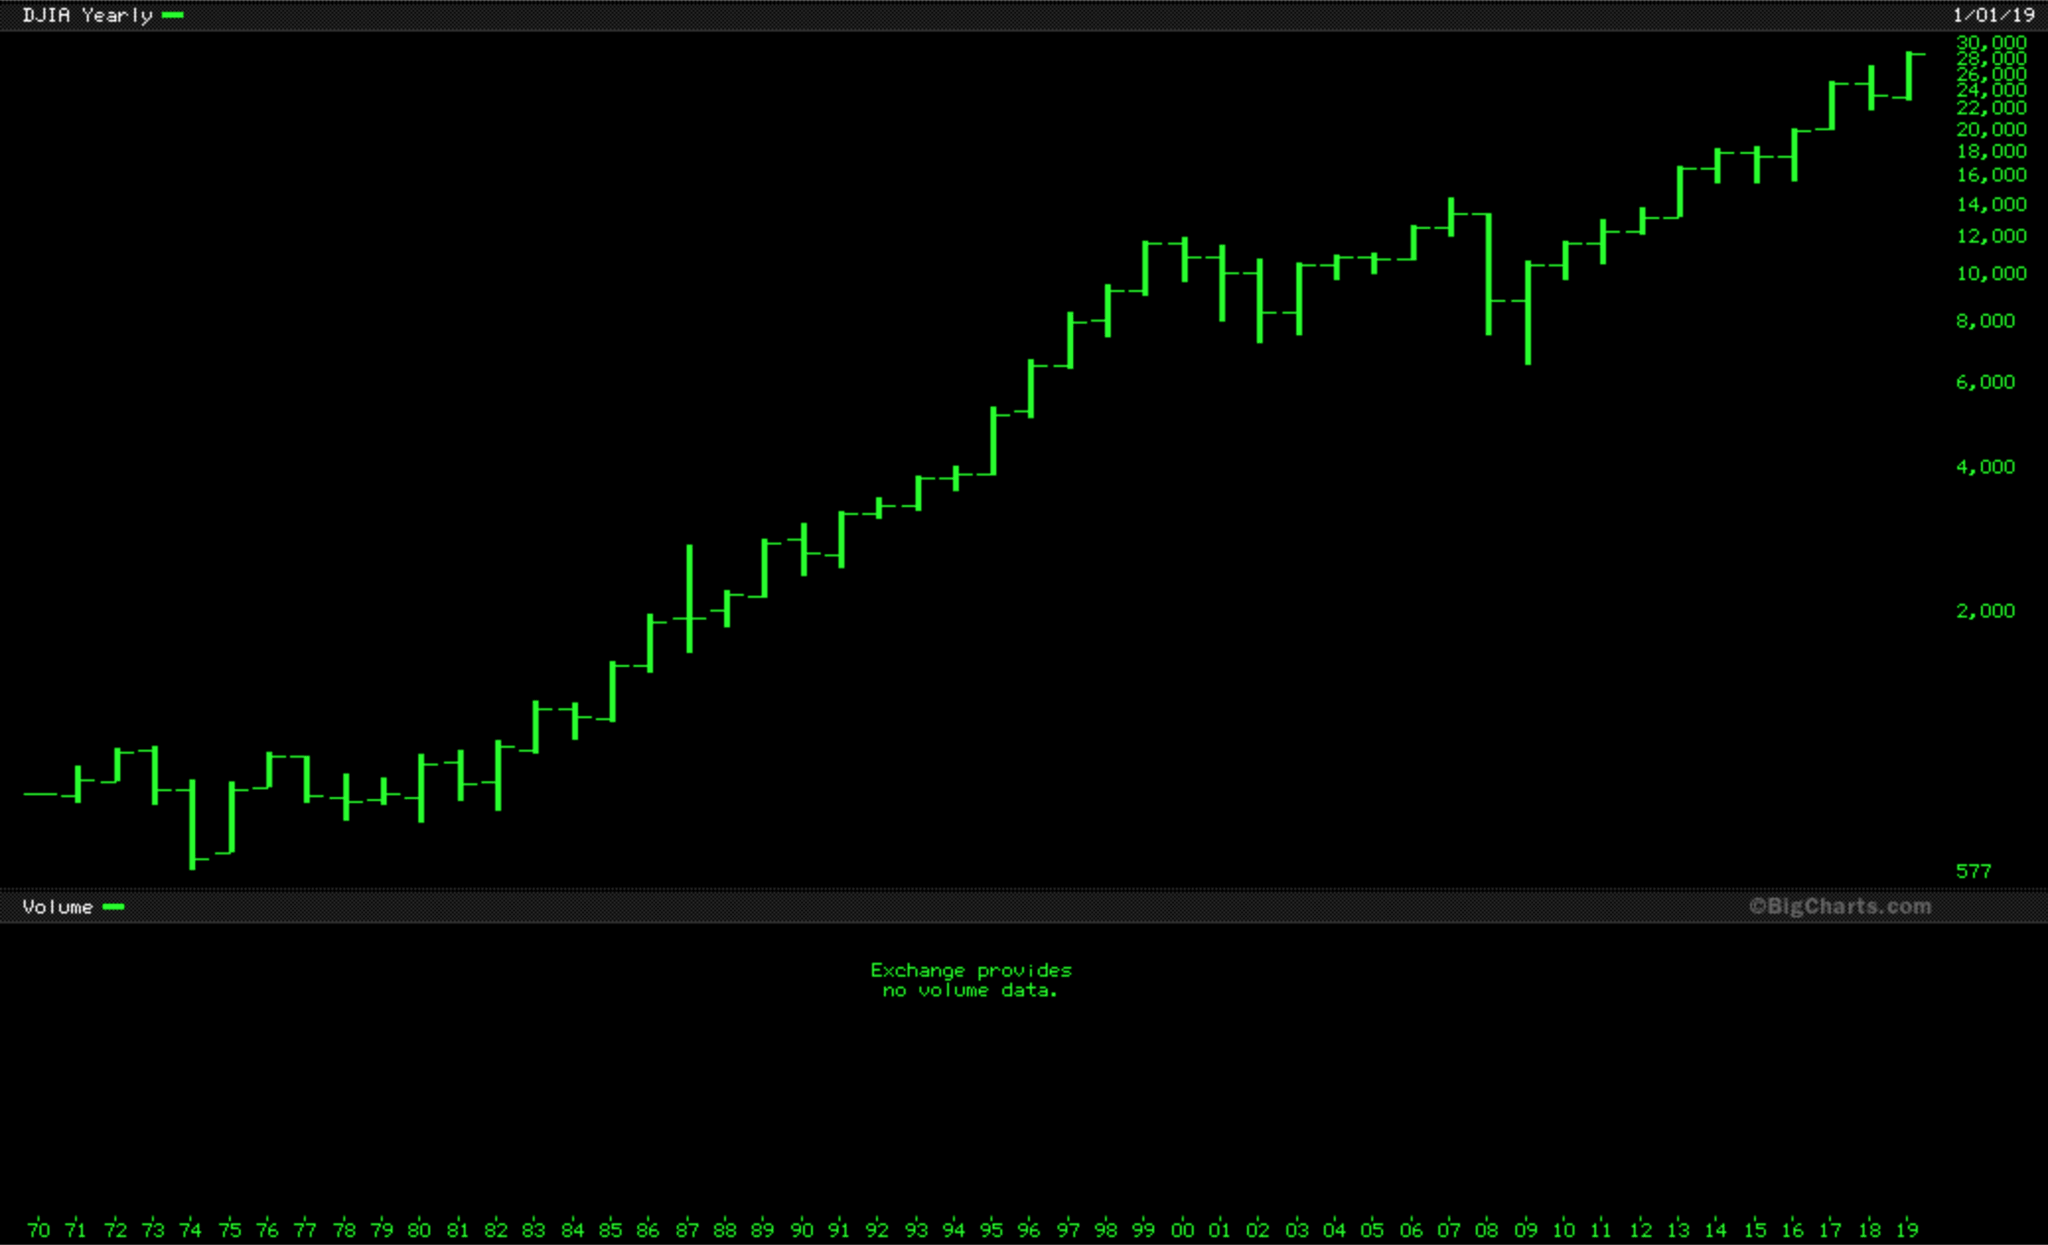 Here's your freshly minted Dow Annual OHLC 40 Year Chart https://t.co/sCJC5ylpDT